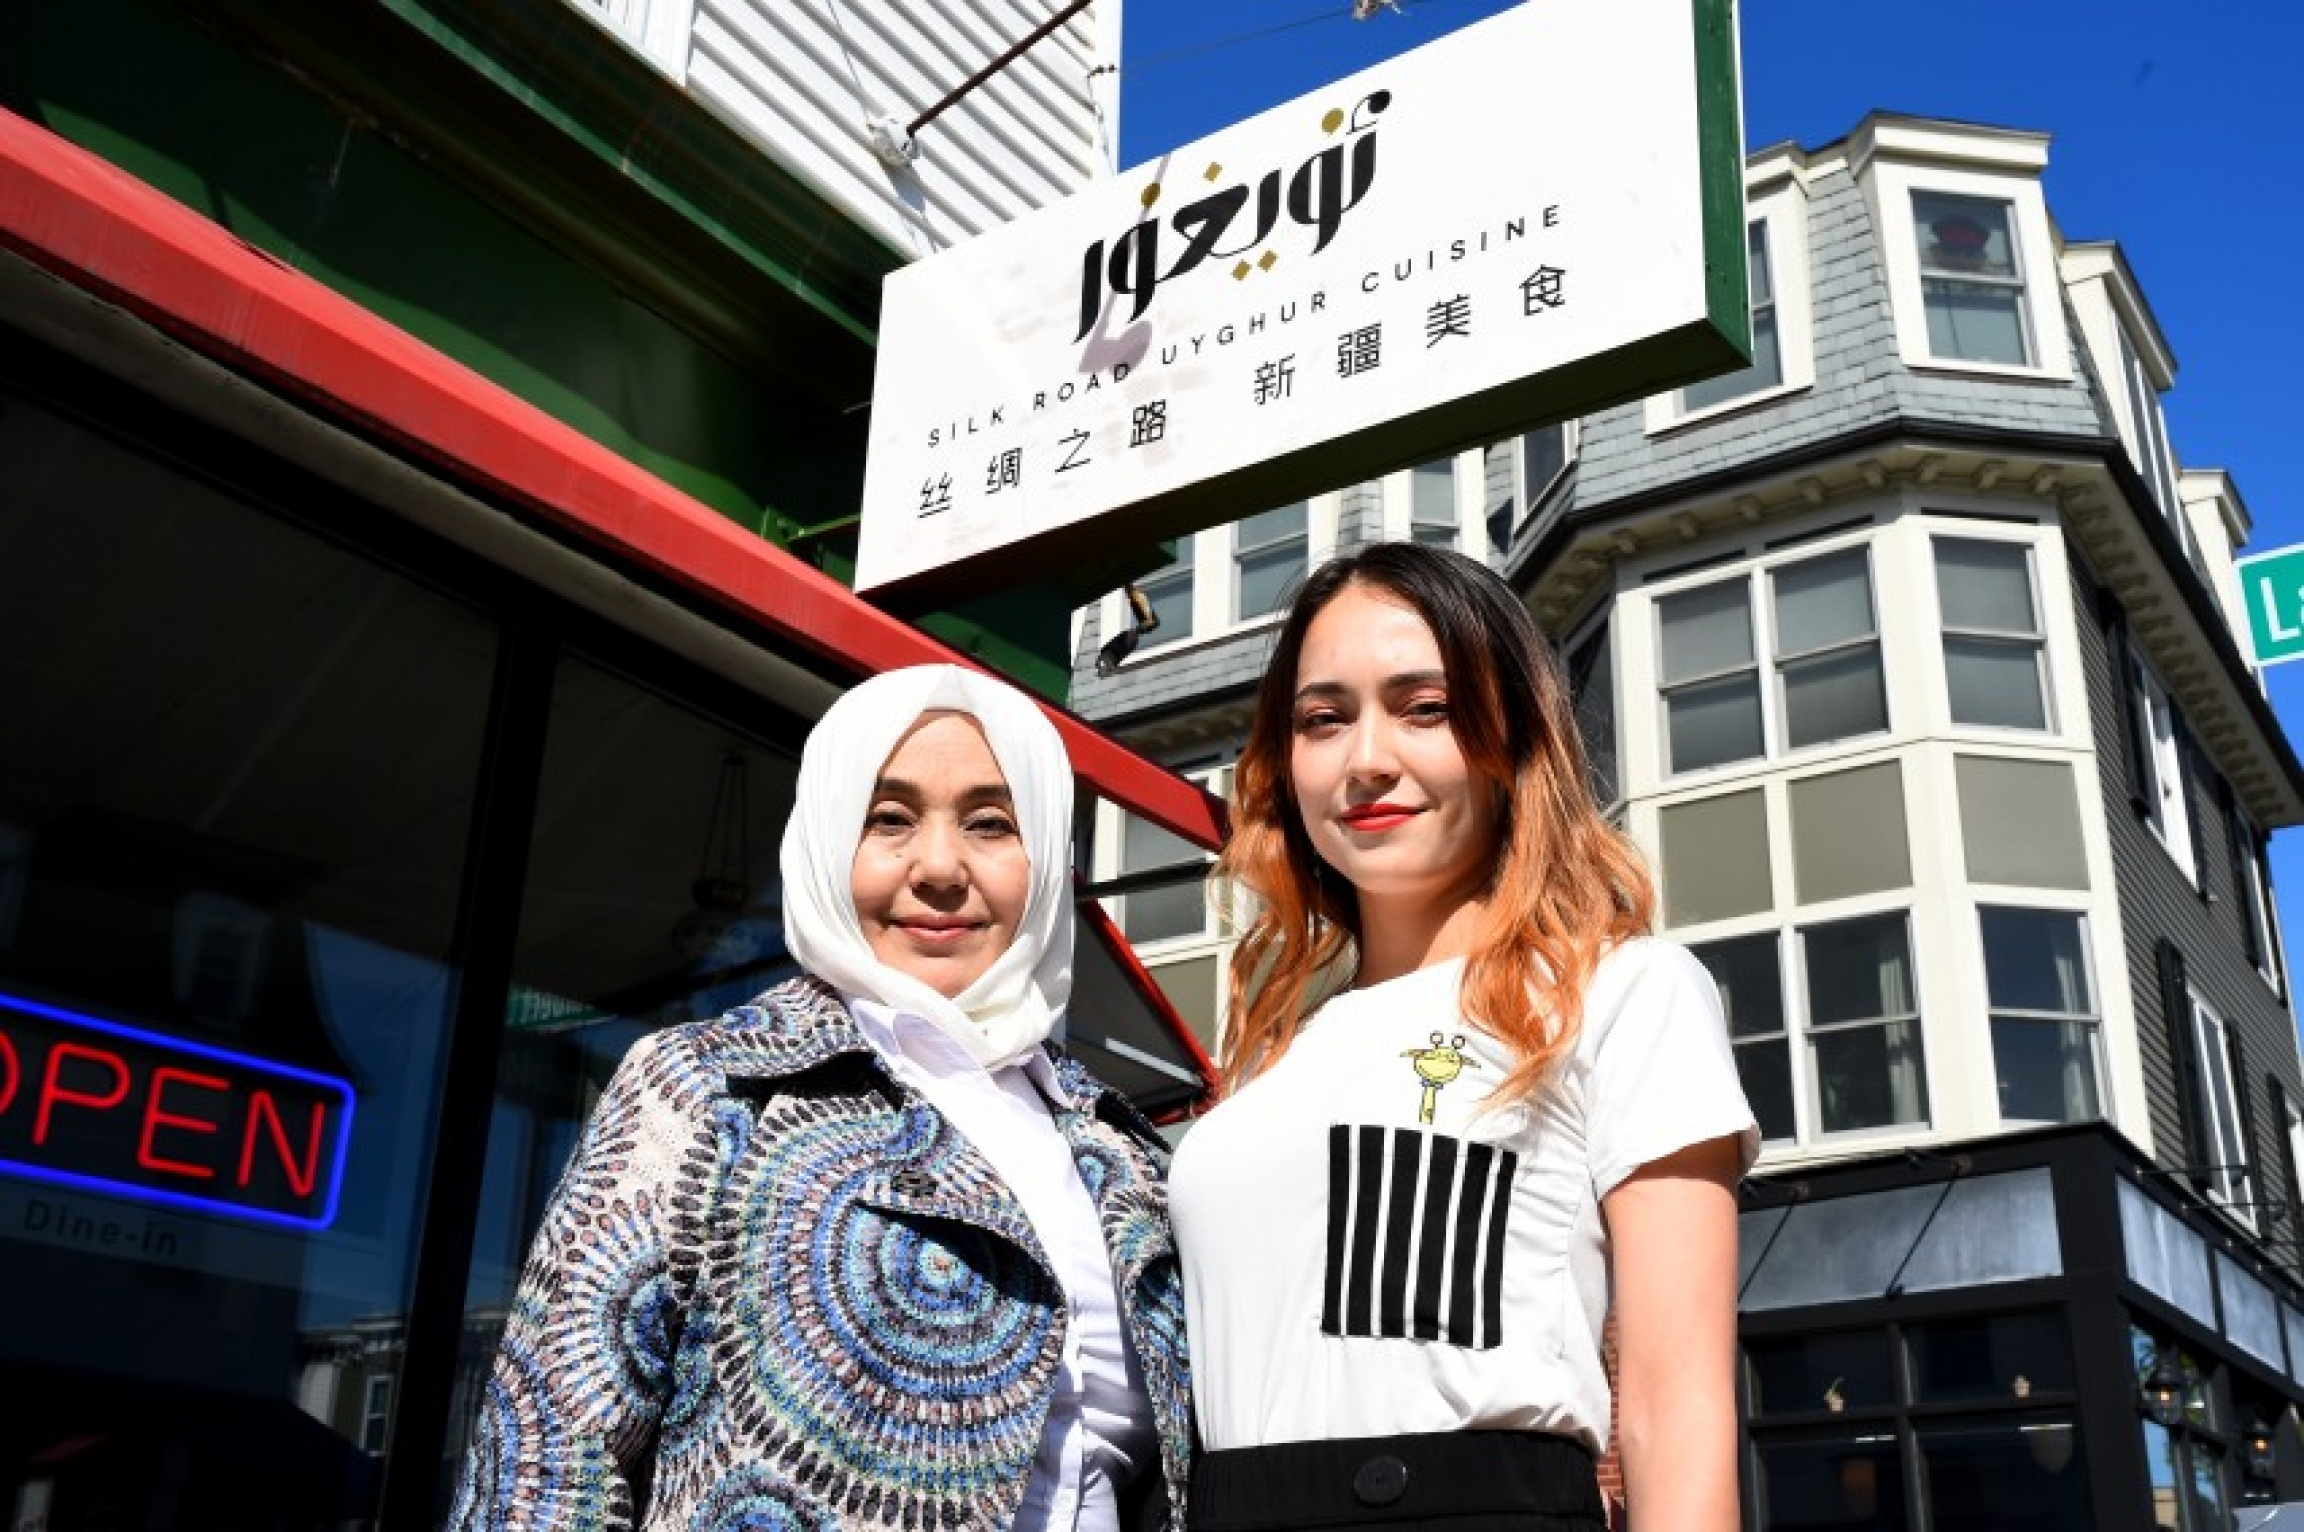 Two women stand outside a restaurant